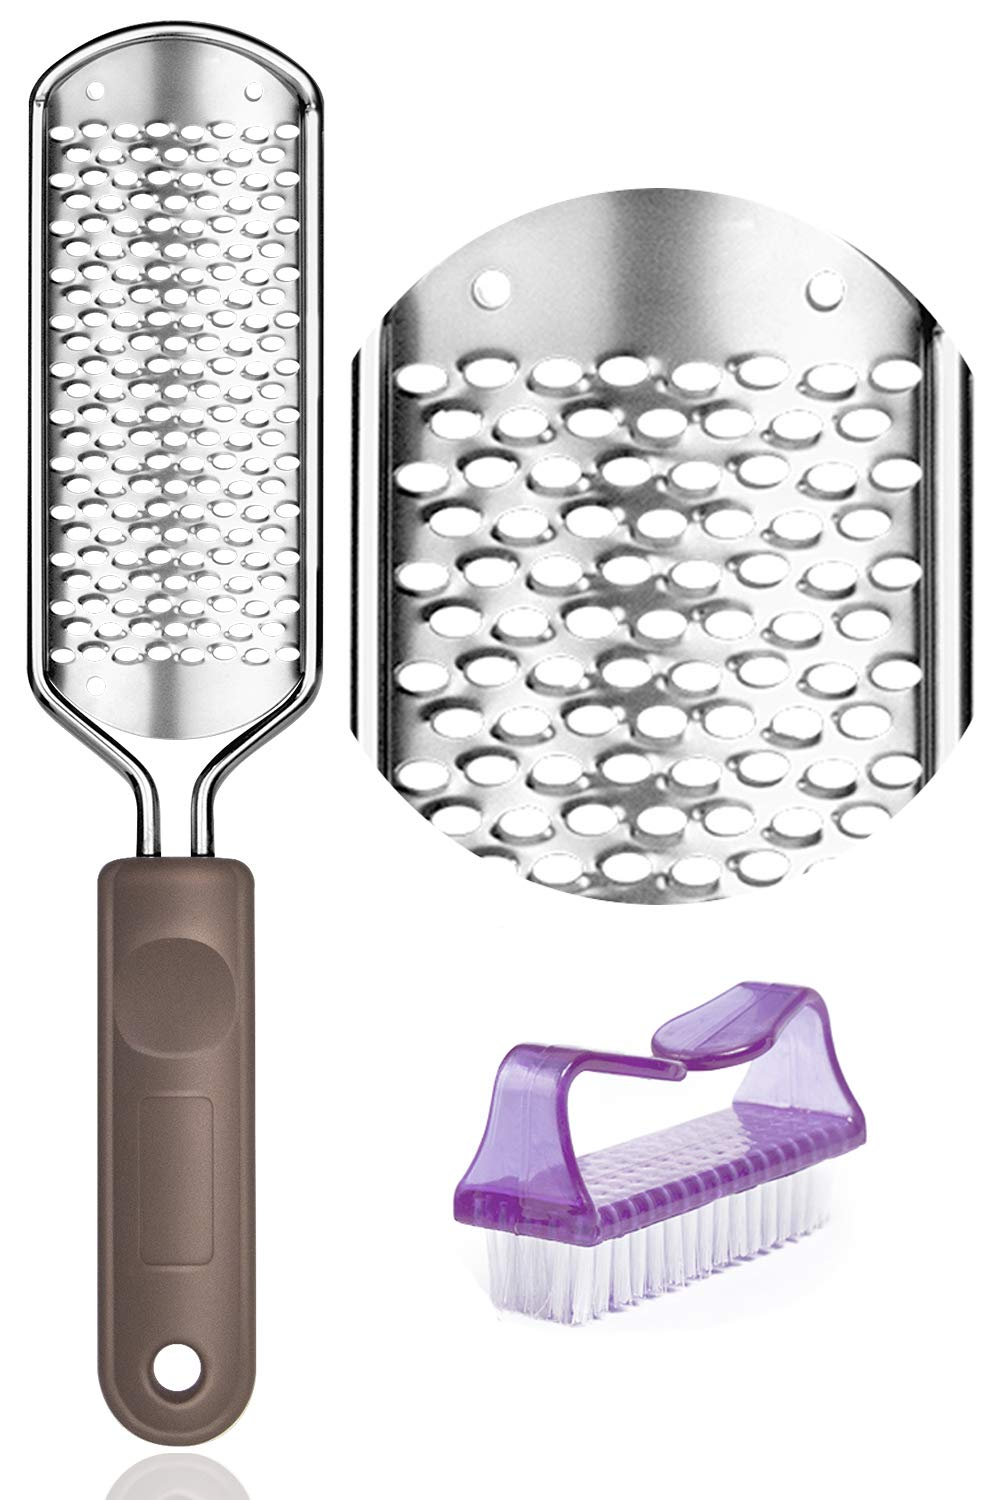 Colossal Foot Grater Foot File - Foot Rasp Callus Remover BTArtbox Large Stainless Steel Foot Scrubber Foot Care Pedicure Tools for Wet and Dry Feet